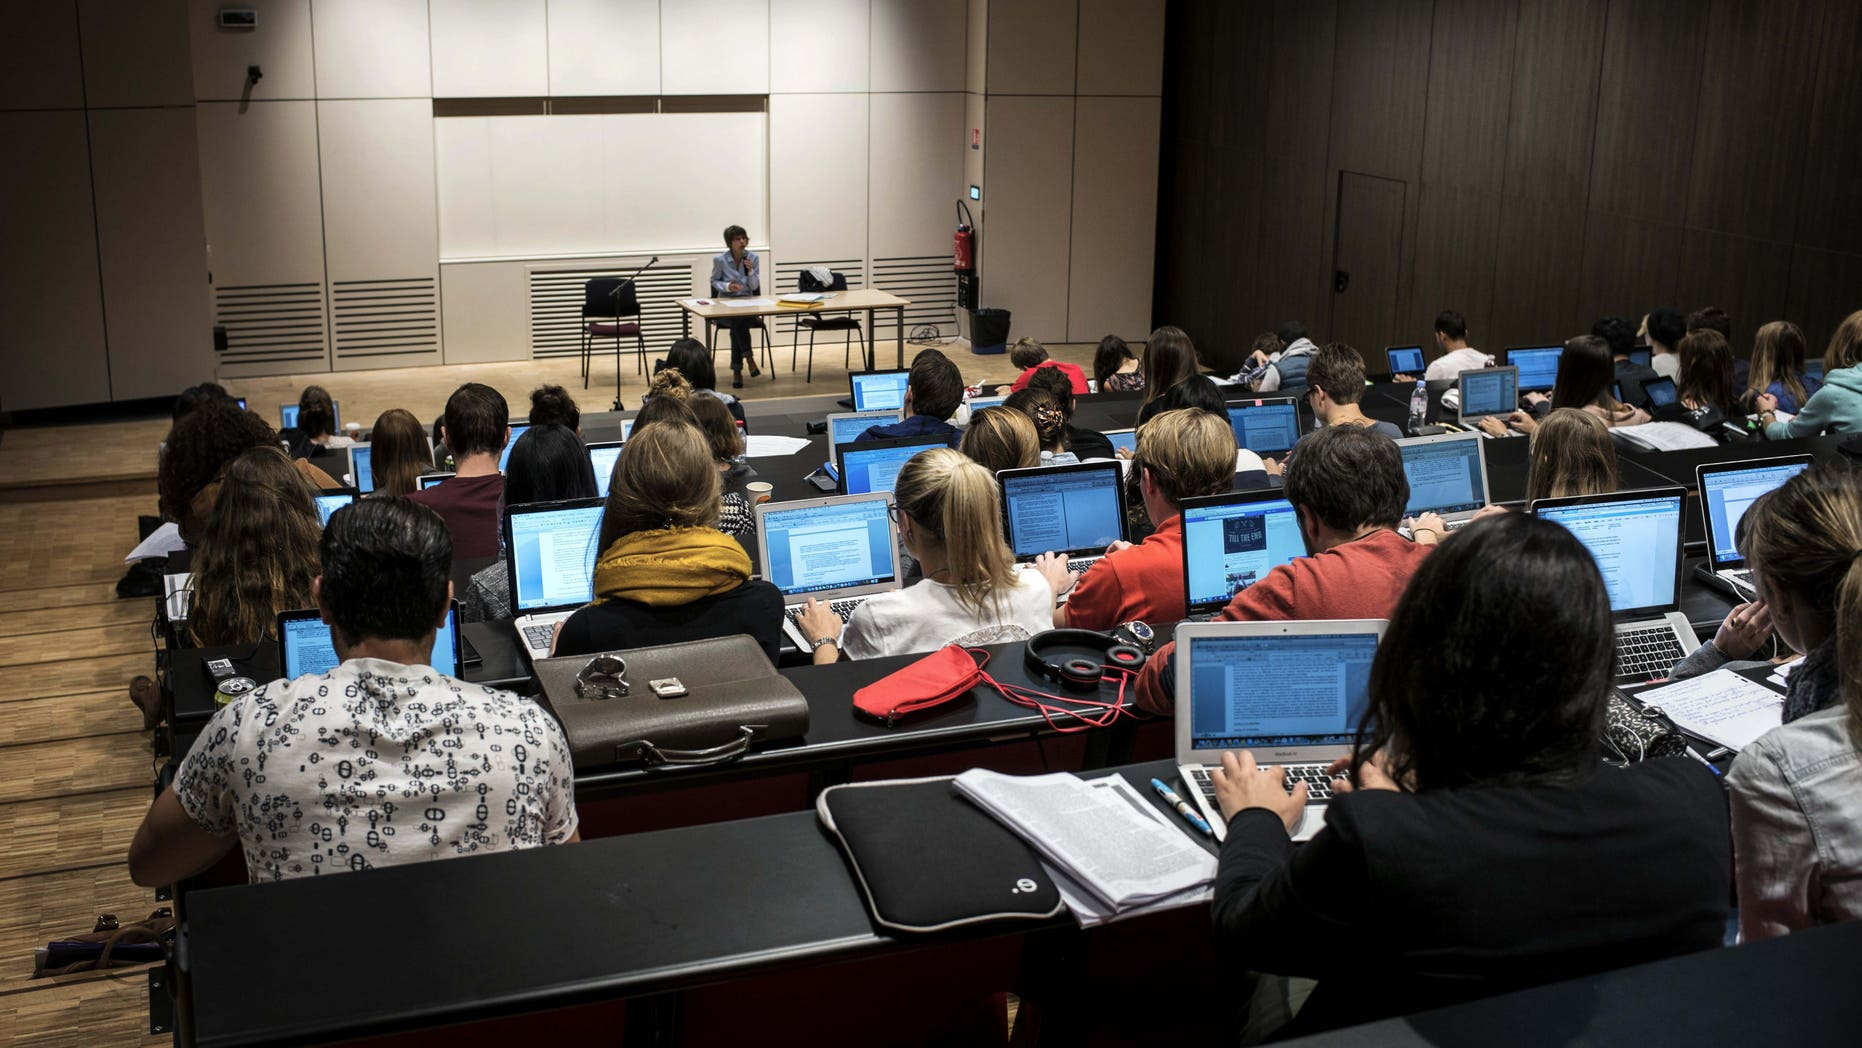 Students of the Catholic University of Lyon use laptops to take notes in a classroom, on September 18, 2015 in Lyon, eastern France. AFP PHOTO / JEFF PACHOUD        (Photo credit should read JEFF PACHOUD/AFP/Getty Images)